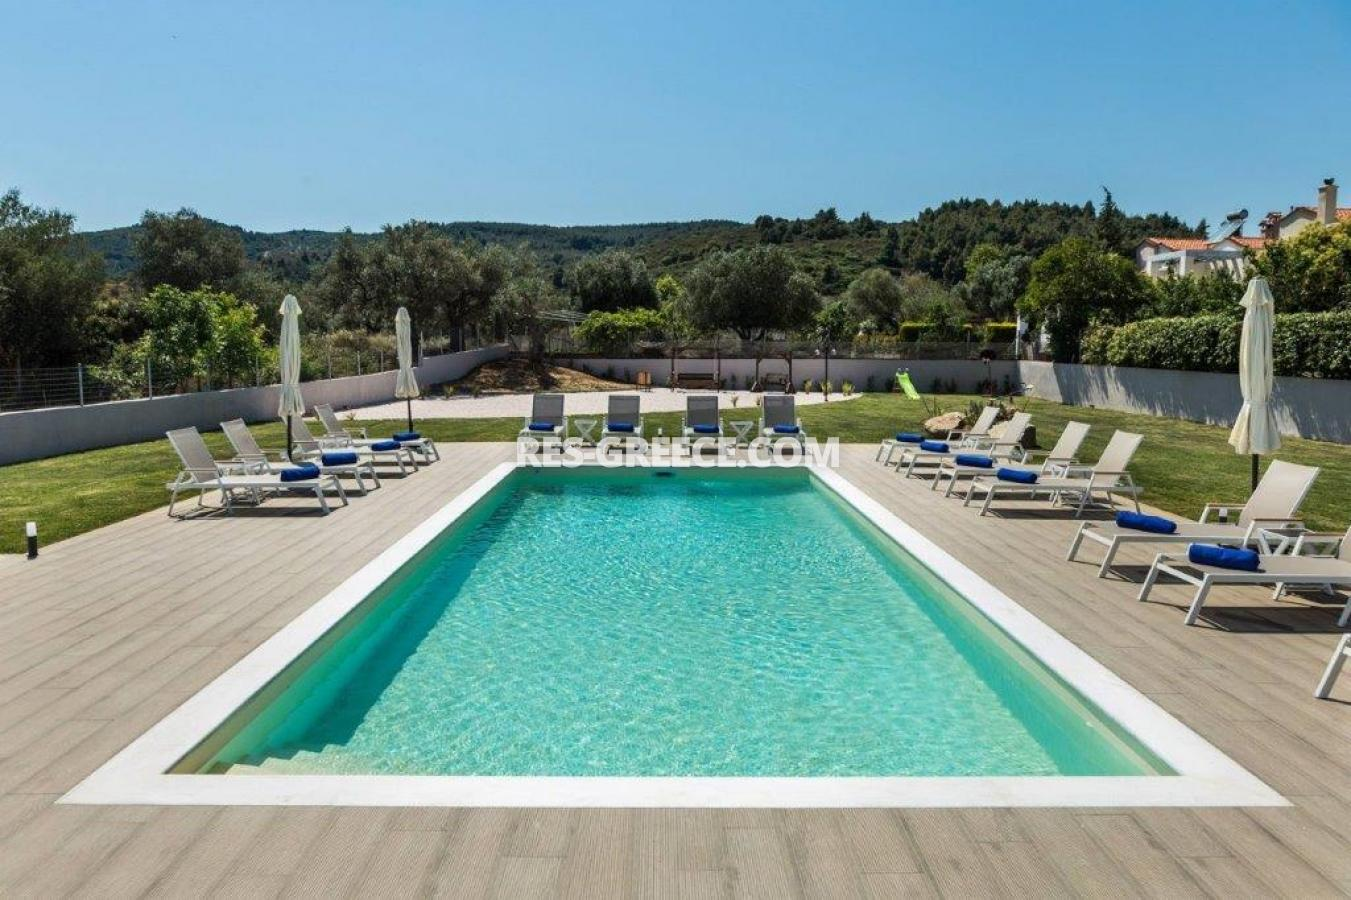 Complex Art, Halkidiki-Sithonia, Greece - complex of 4 mesonettes for rent with pool in just 80m from the beach - Photo 3